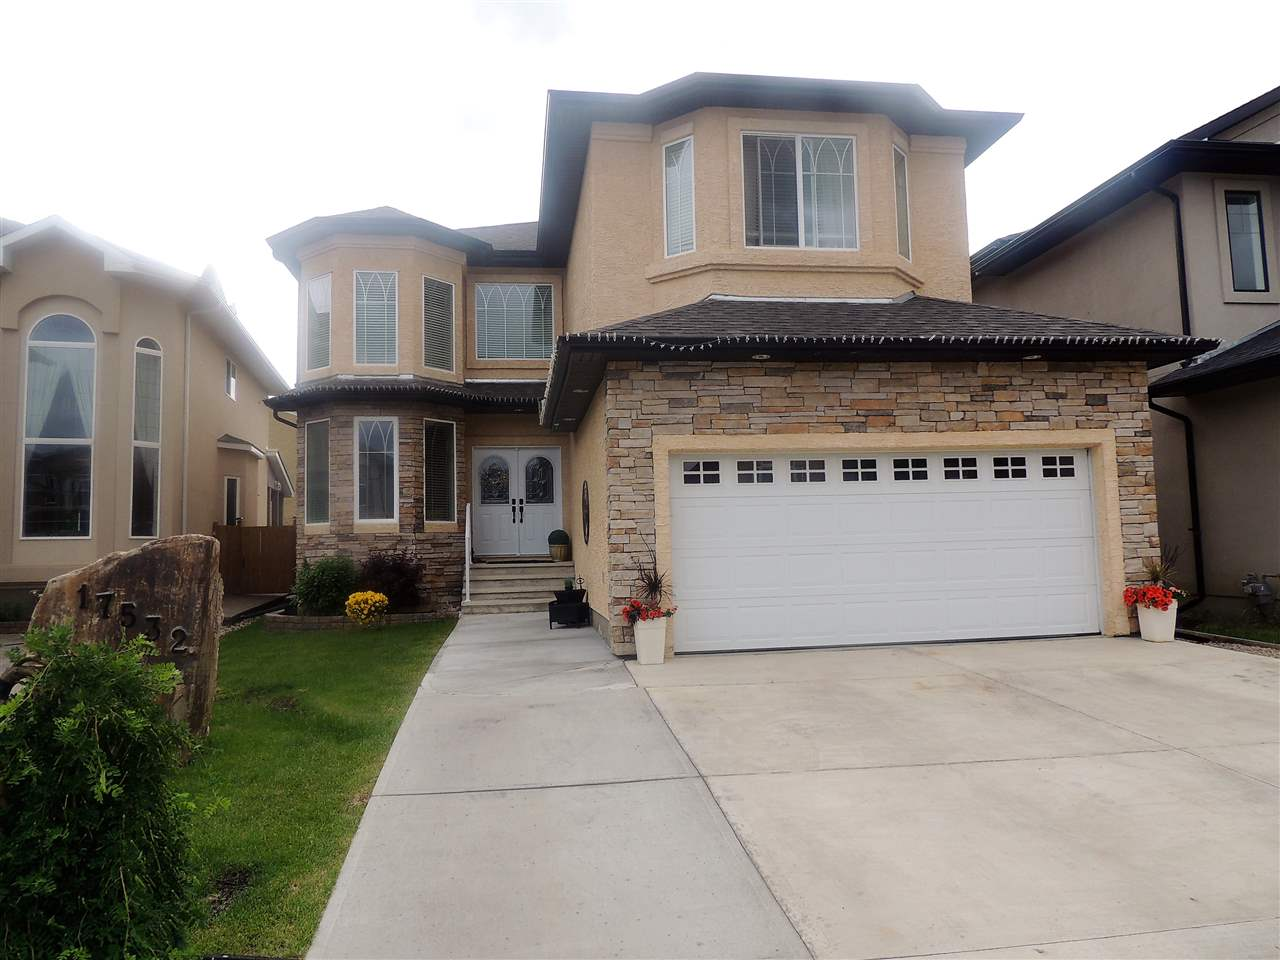 Main Photo: 17532 110 Street in Edmonton: Zone 27 House for sale : MLS® # E4068774